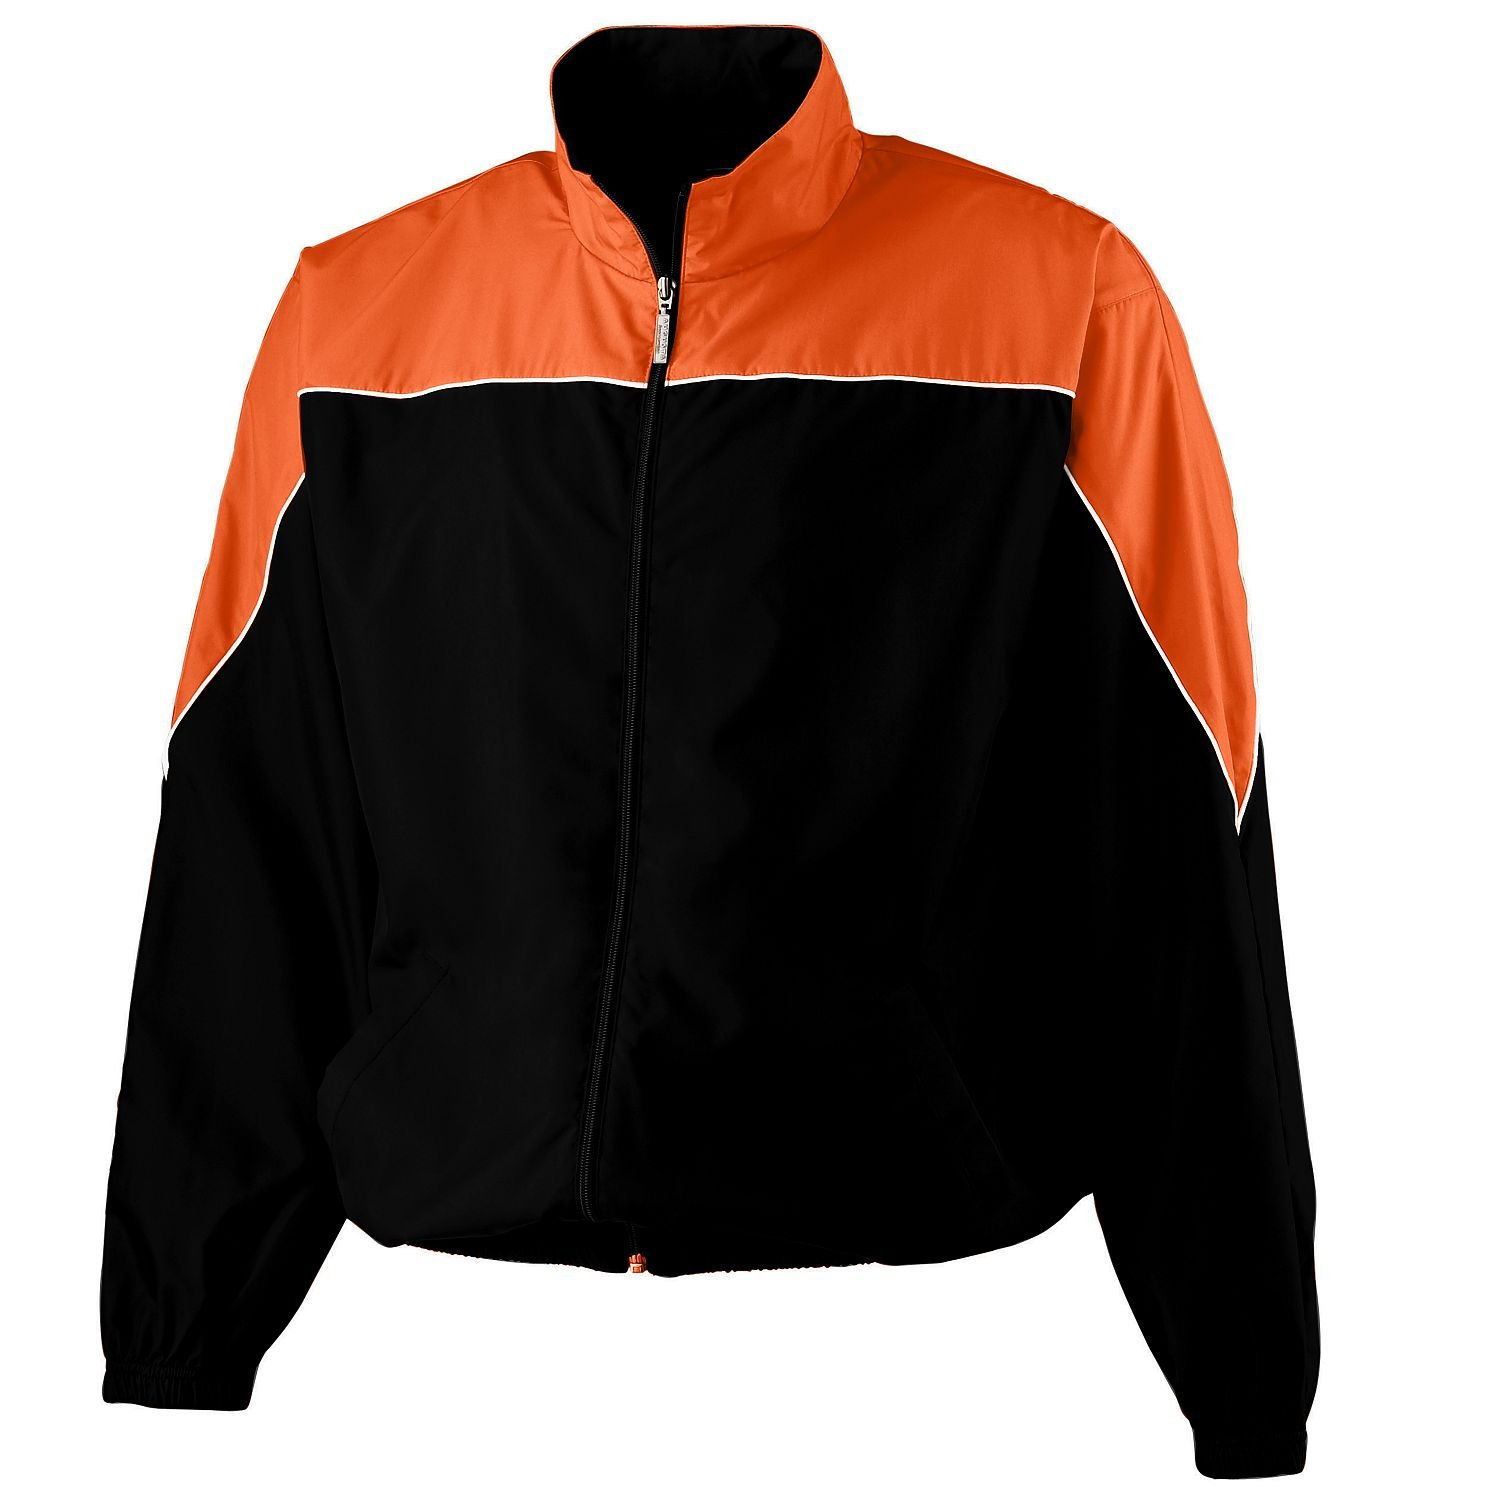 Youth Poly Color Block Jacket, Color: Black/Orange/White, Size: Small youth baseball jersey color white maroon size medium